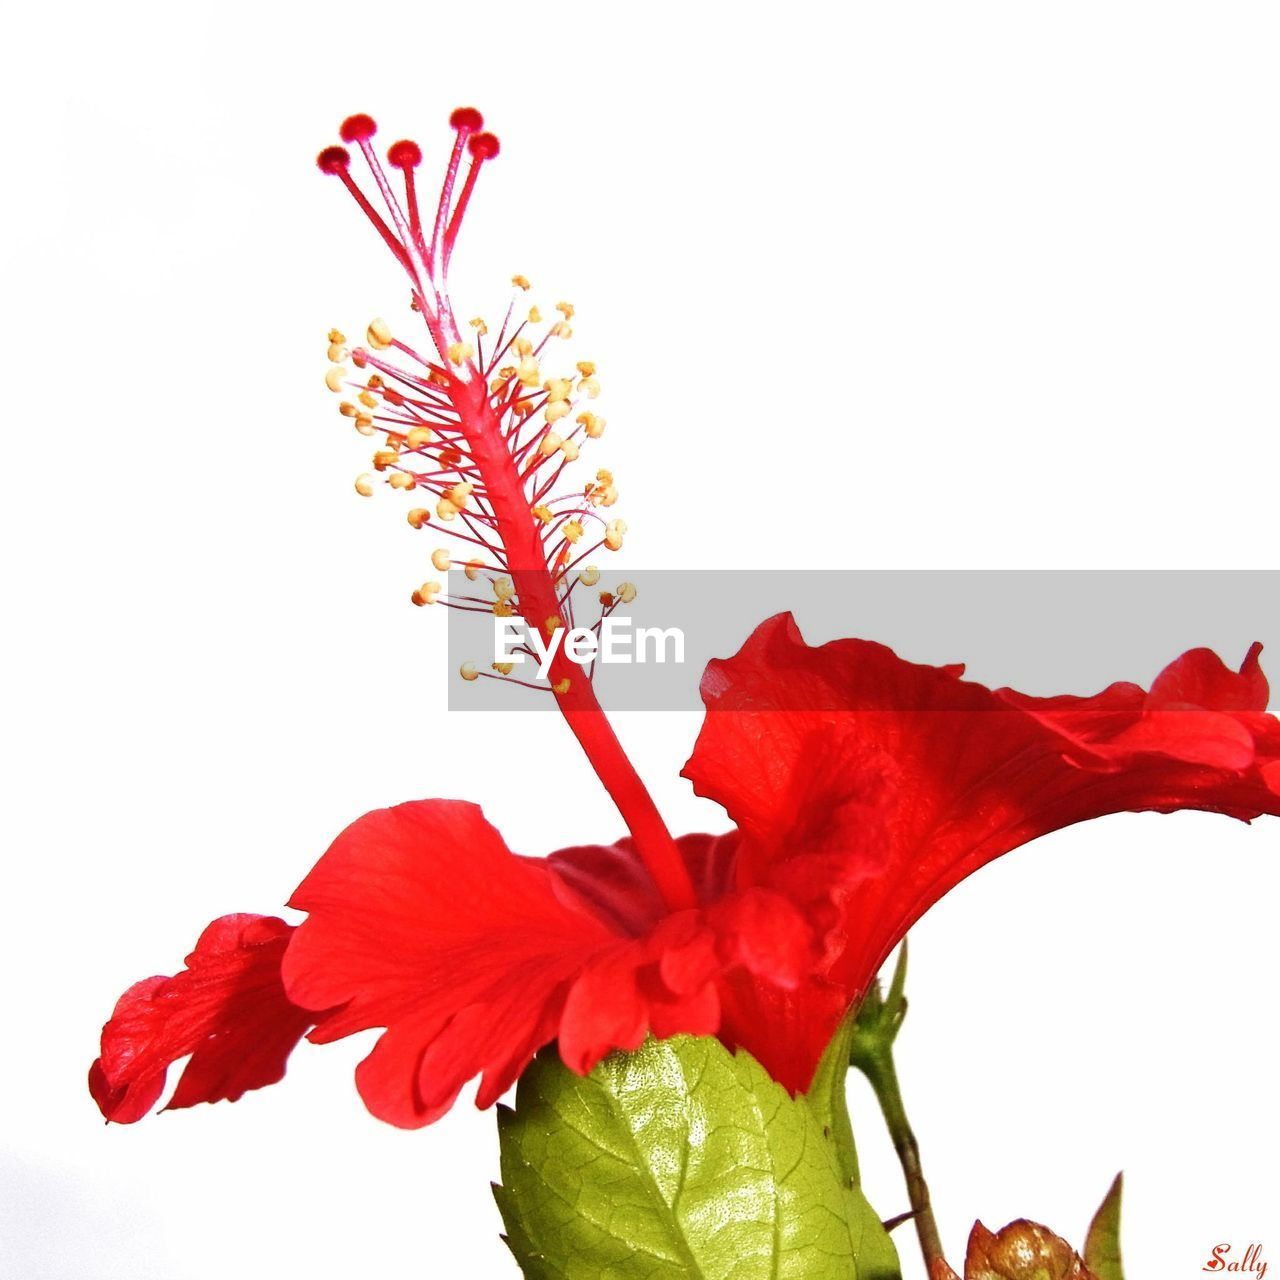 flower, petal, red, fragility, white background, beauty in nature, flower head, freshness, studio shot, nature, plant, no people, growth, close-up, leaf, springtime, blooming, hibiscus, outdoors, day